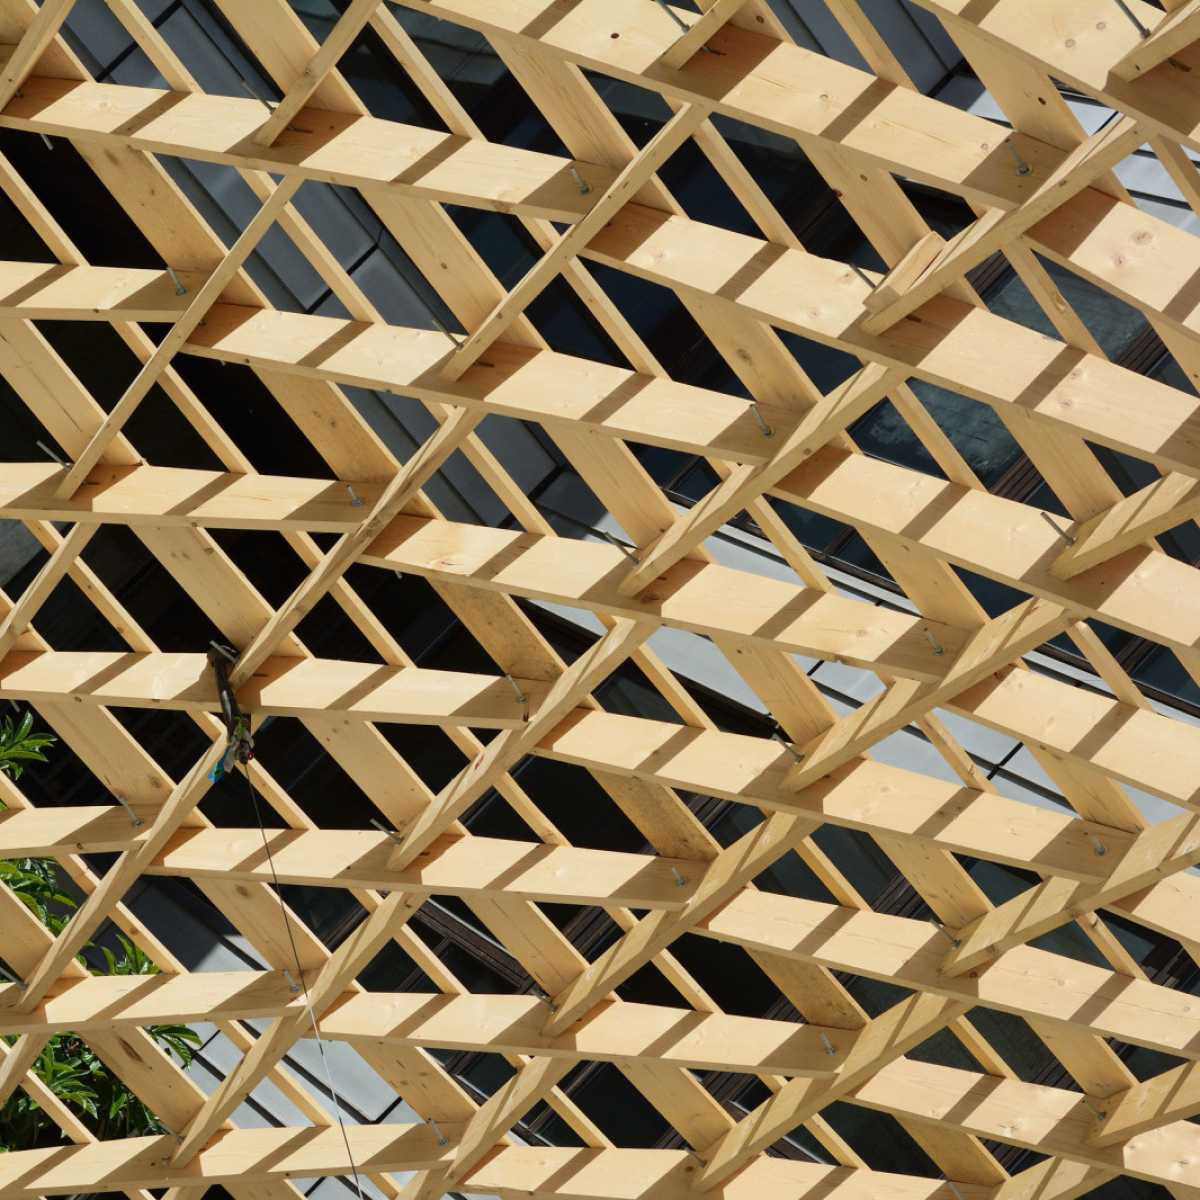 Sustainable alternatives to traditional building materials